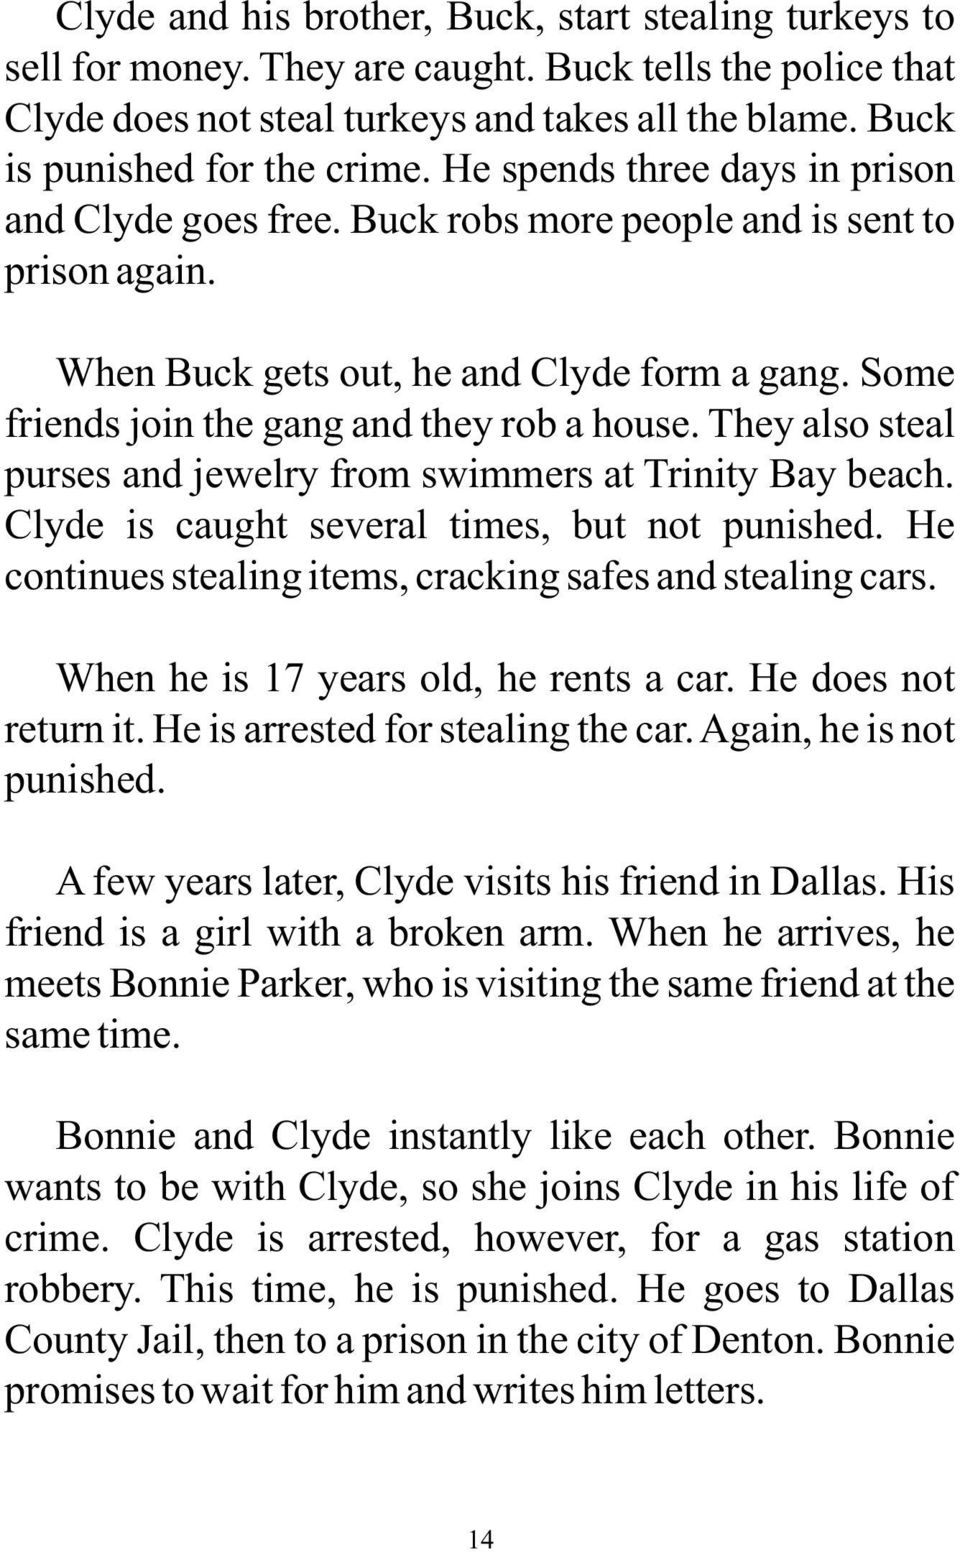 They also steal purses and jewelry from swimmers at Trinity Bay beach. Clyde is caught several times, but not punished. He continues stealing items, cracking safes and stealing cars.